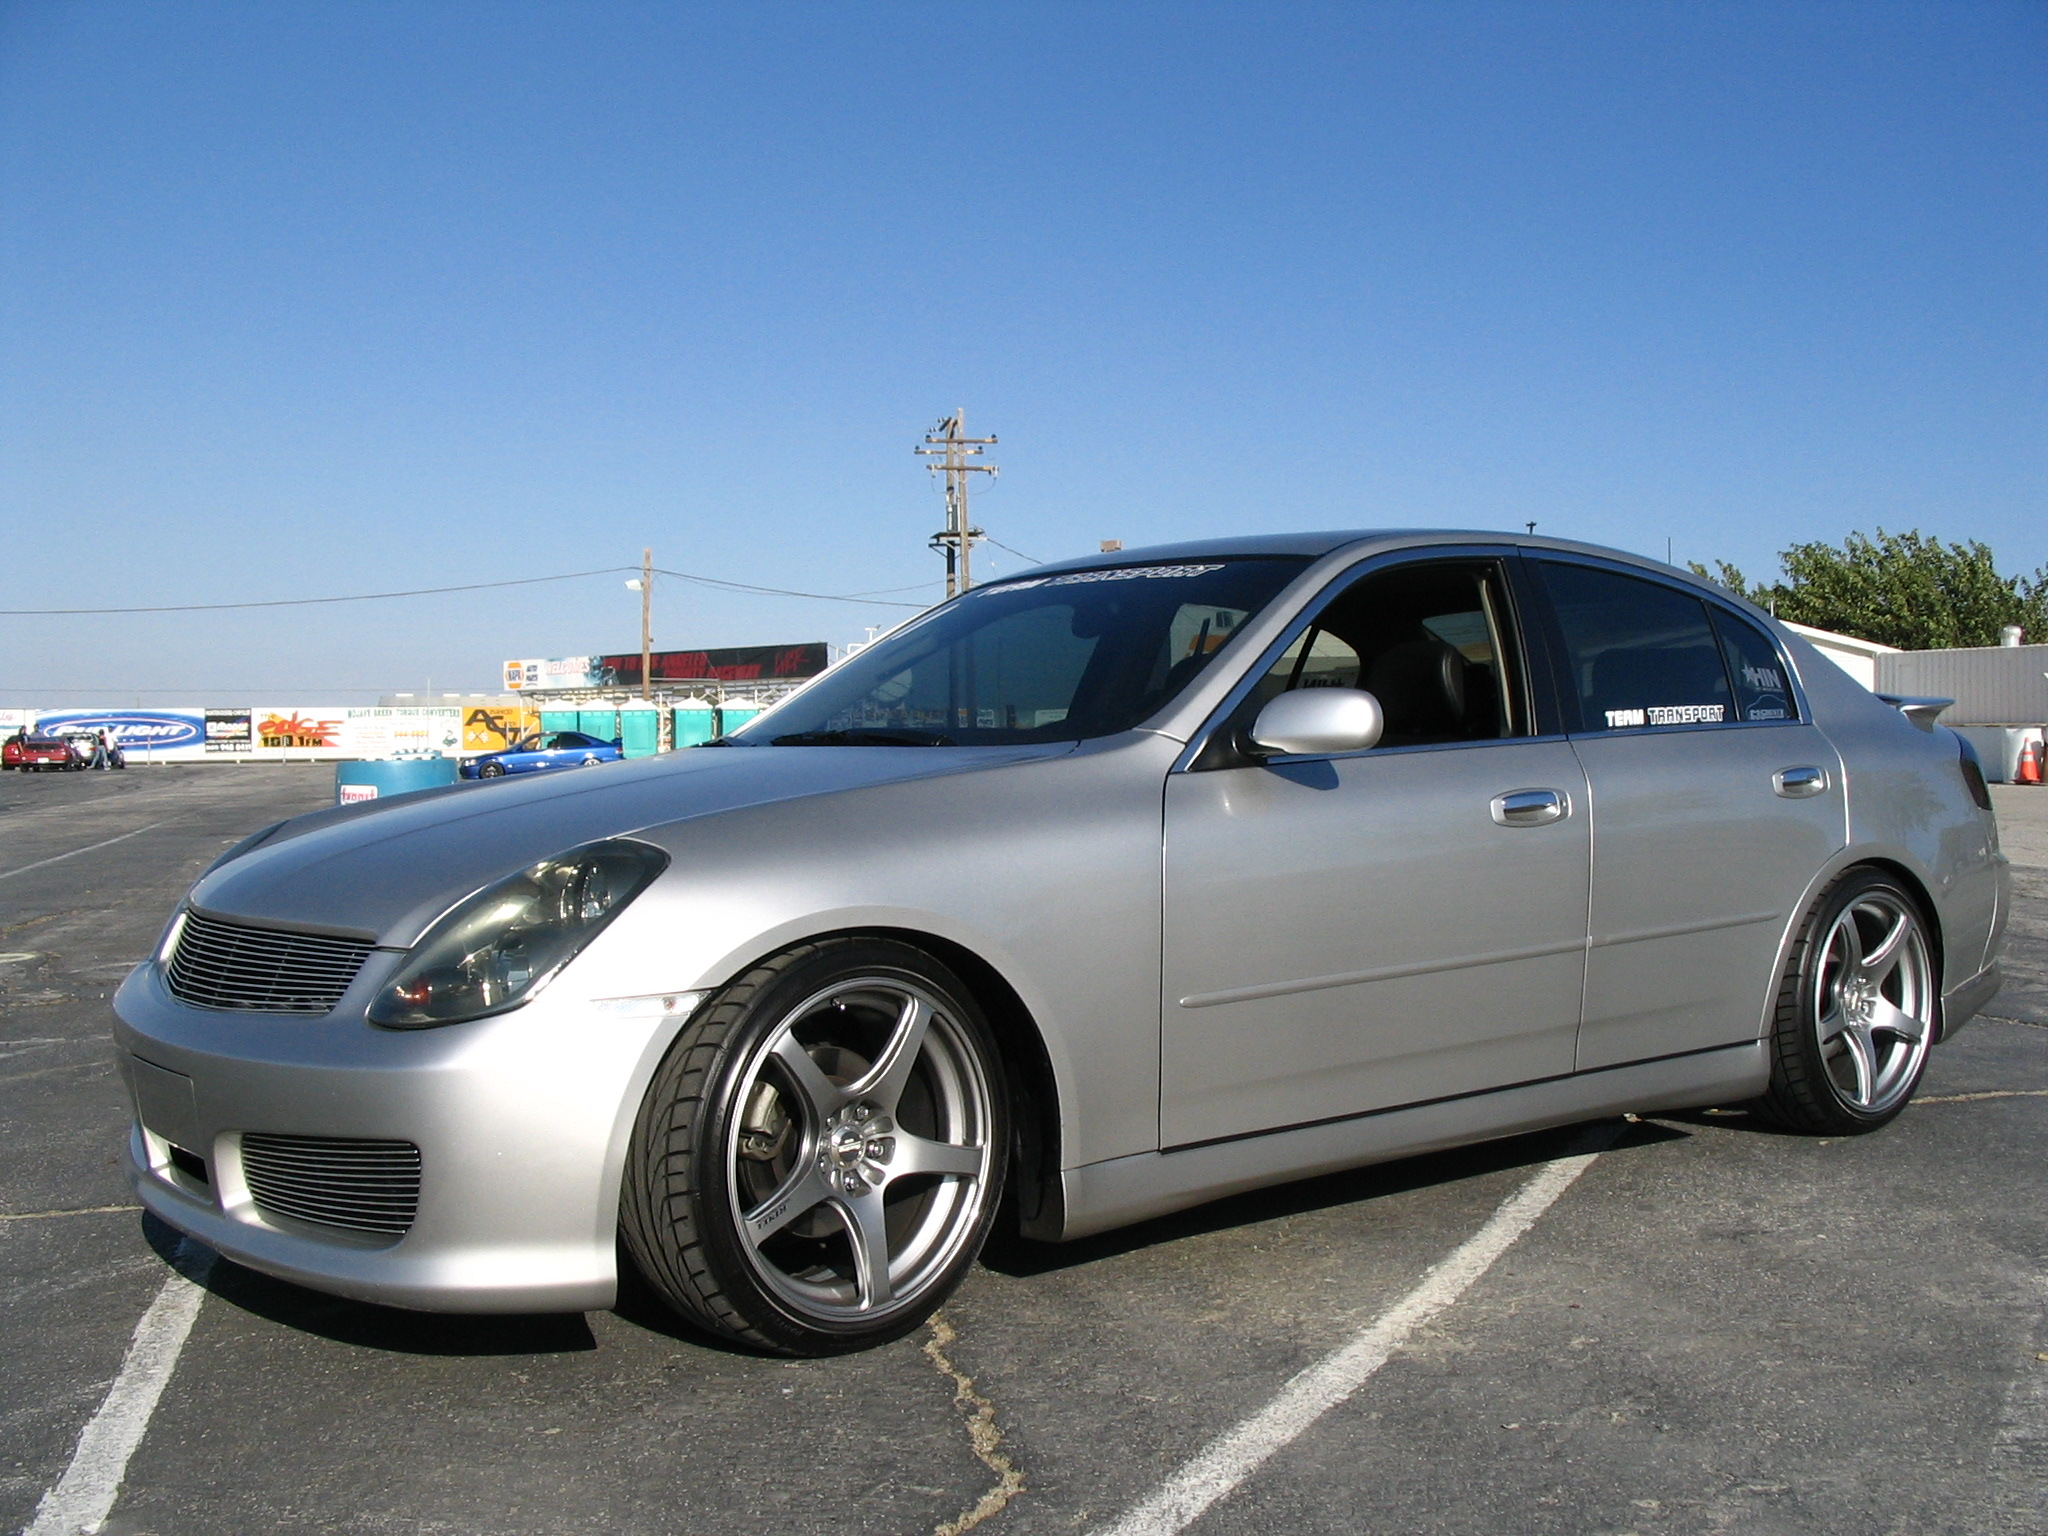 2003 infiniti g35 sedan 1 8 mile drag racing timeslip 0 60. Black Bedroom Furniture Sets. Home Design Ideas